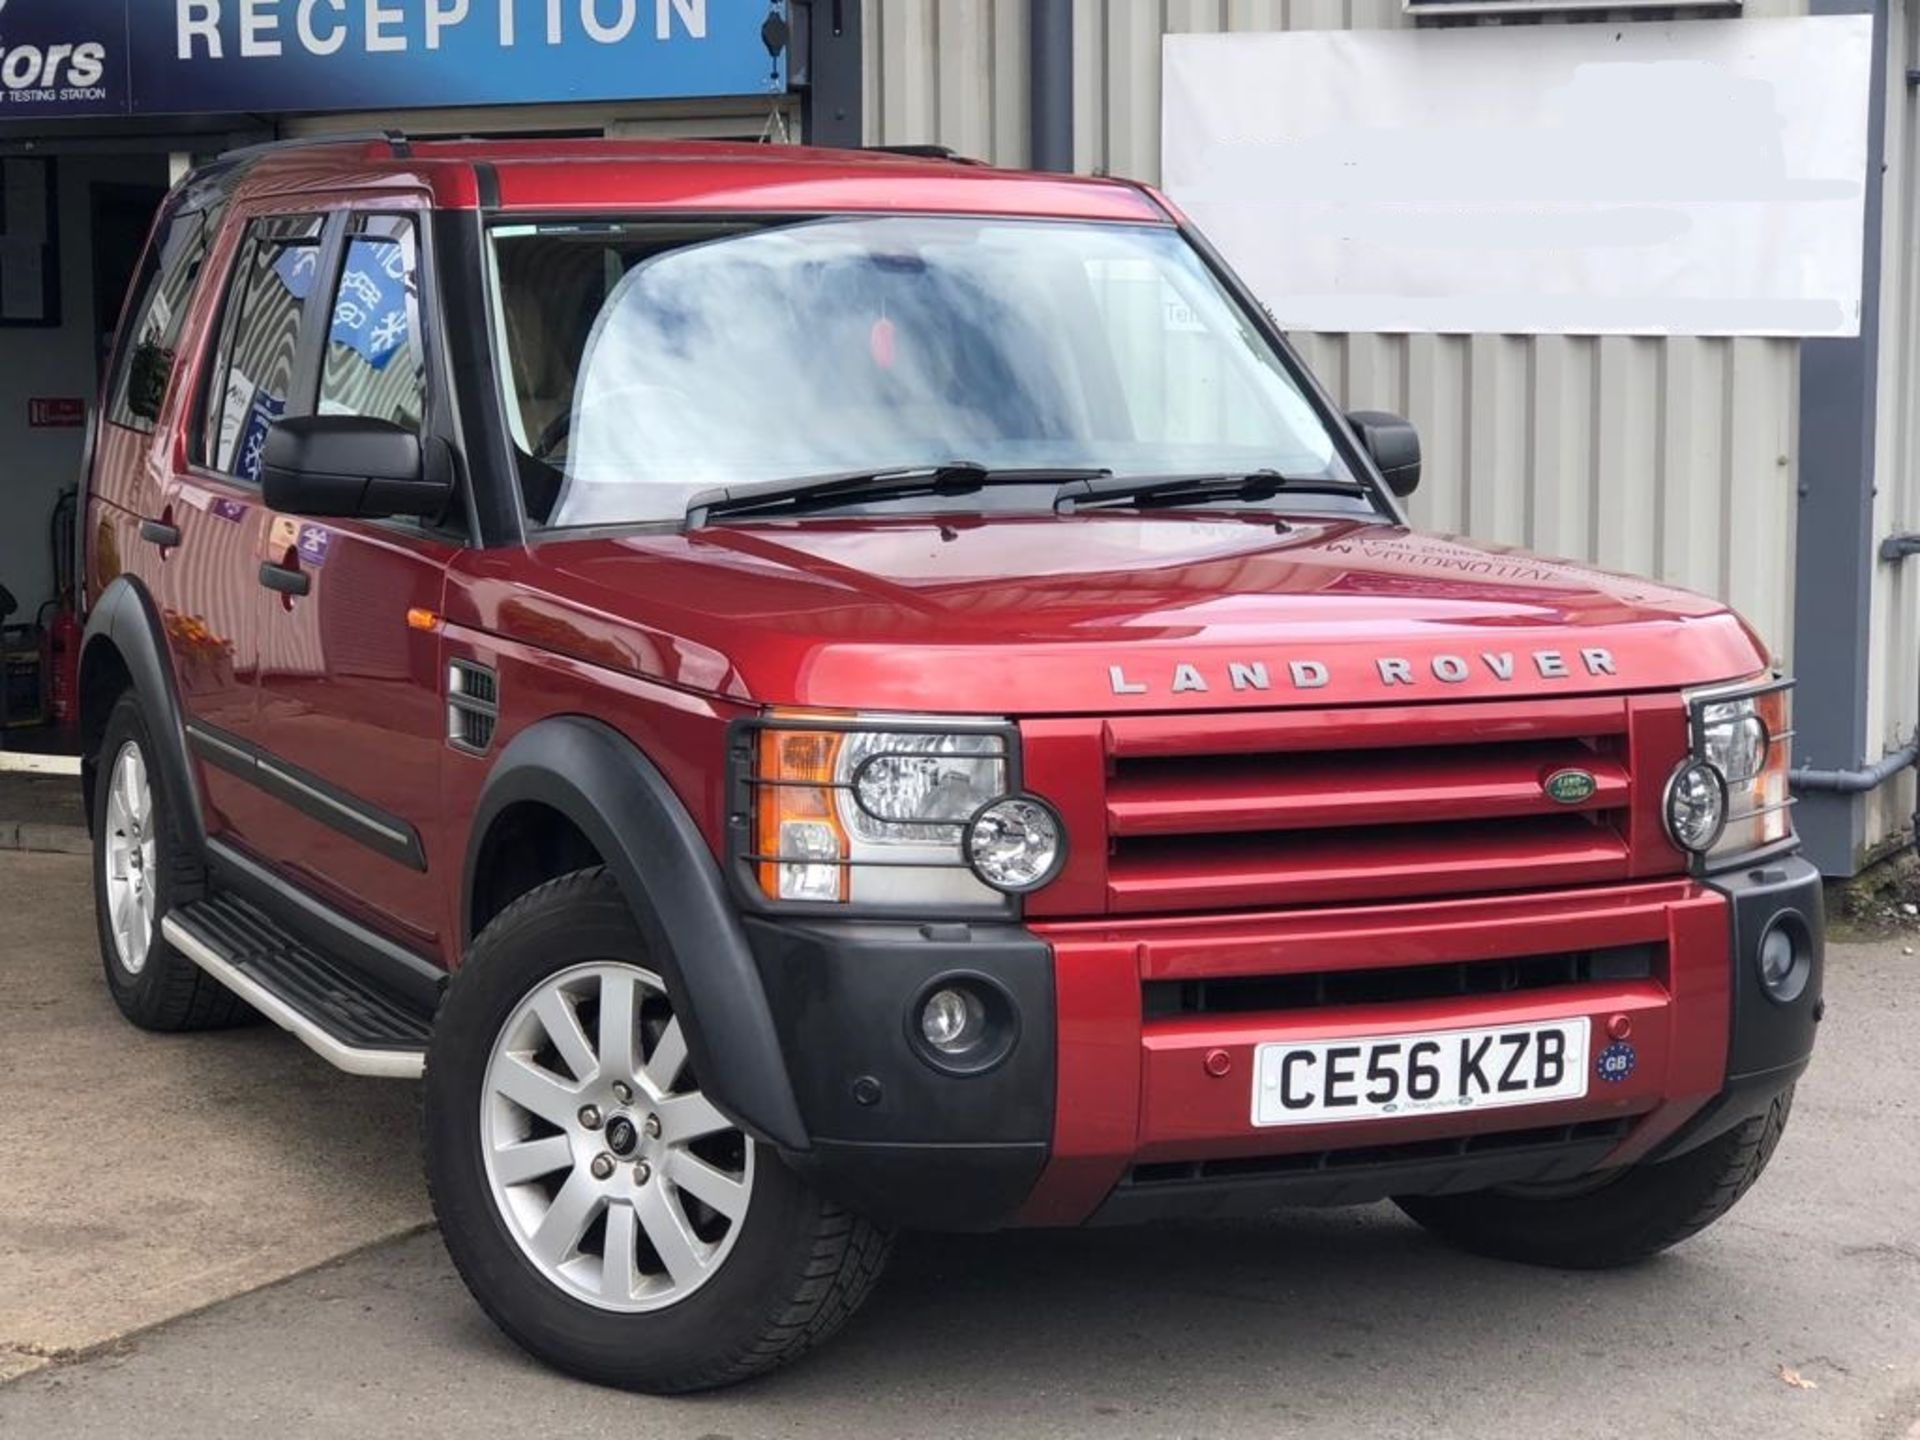 Lot 42 - 2006/56 REG LAND ROVER DISCOVERY 3 TDV6 SE AUTO 2.7 DIESEL 4X4 RED 7 SEATER *NO VAT*